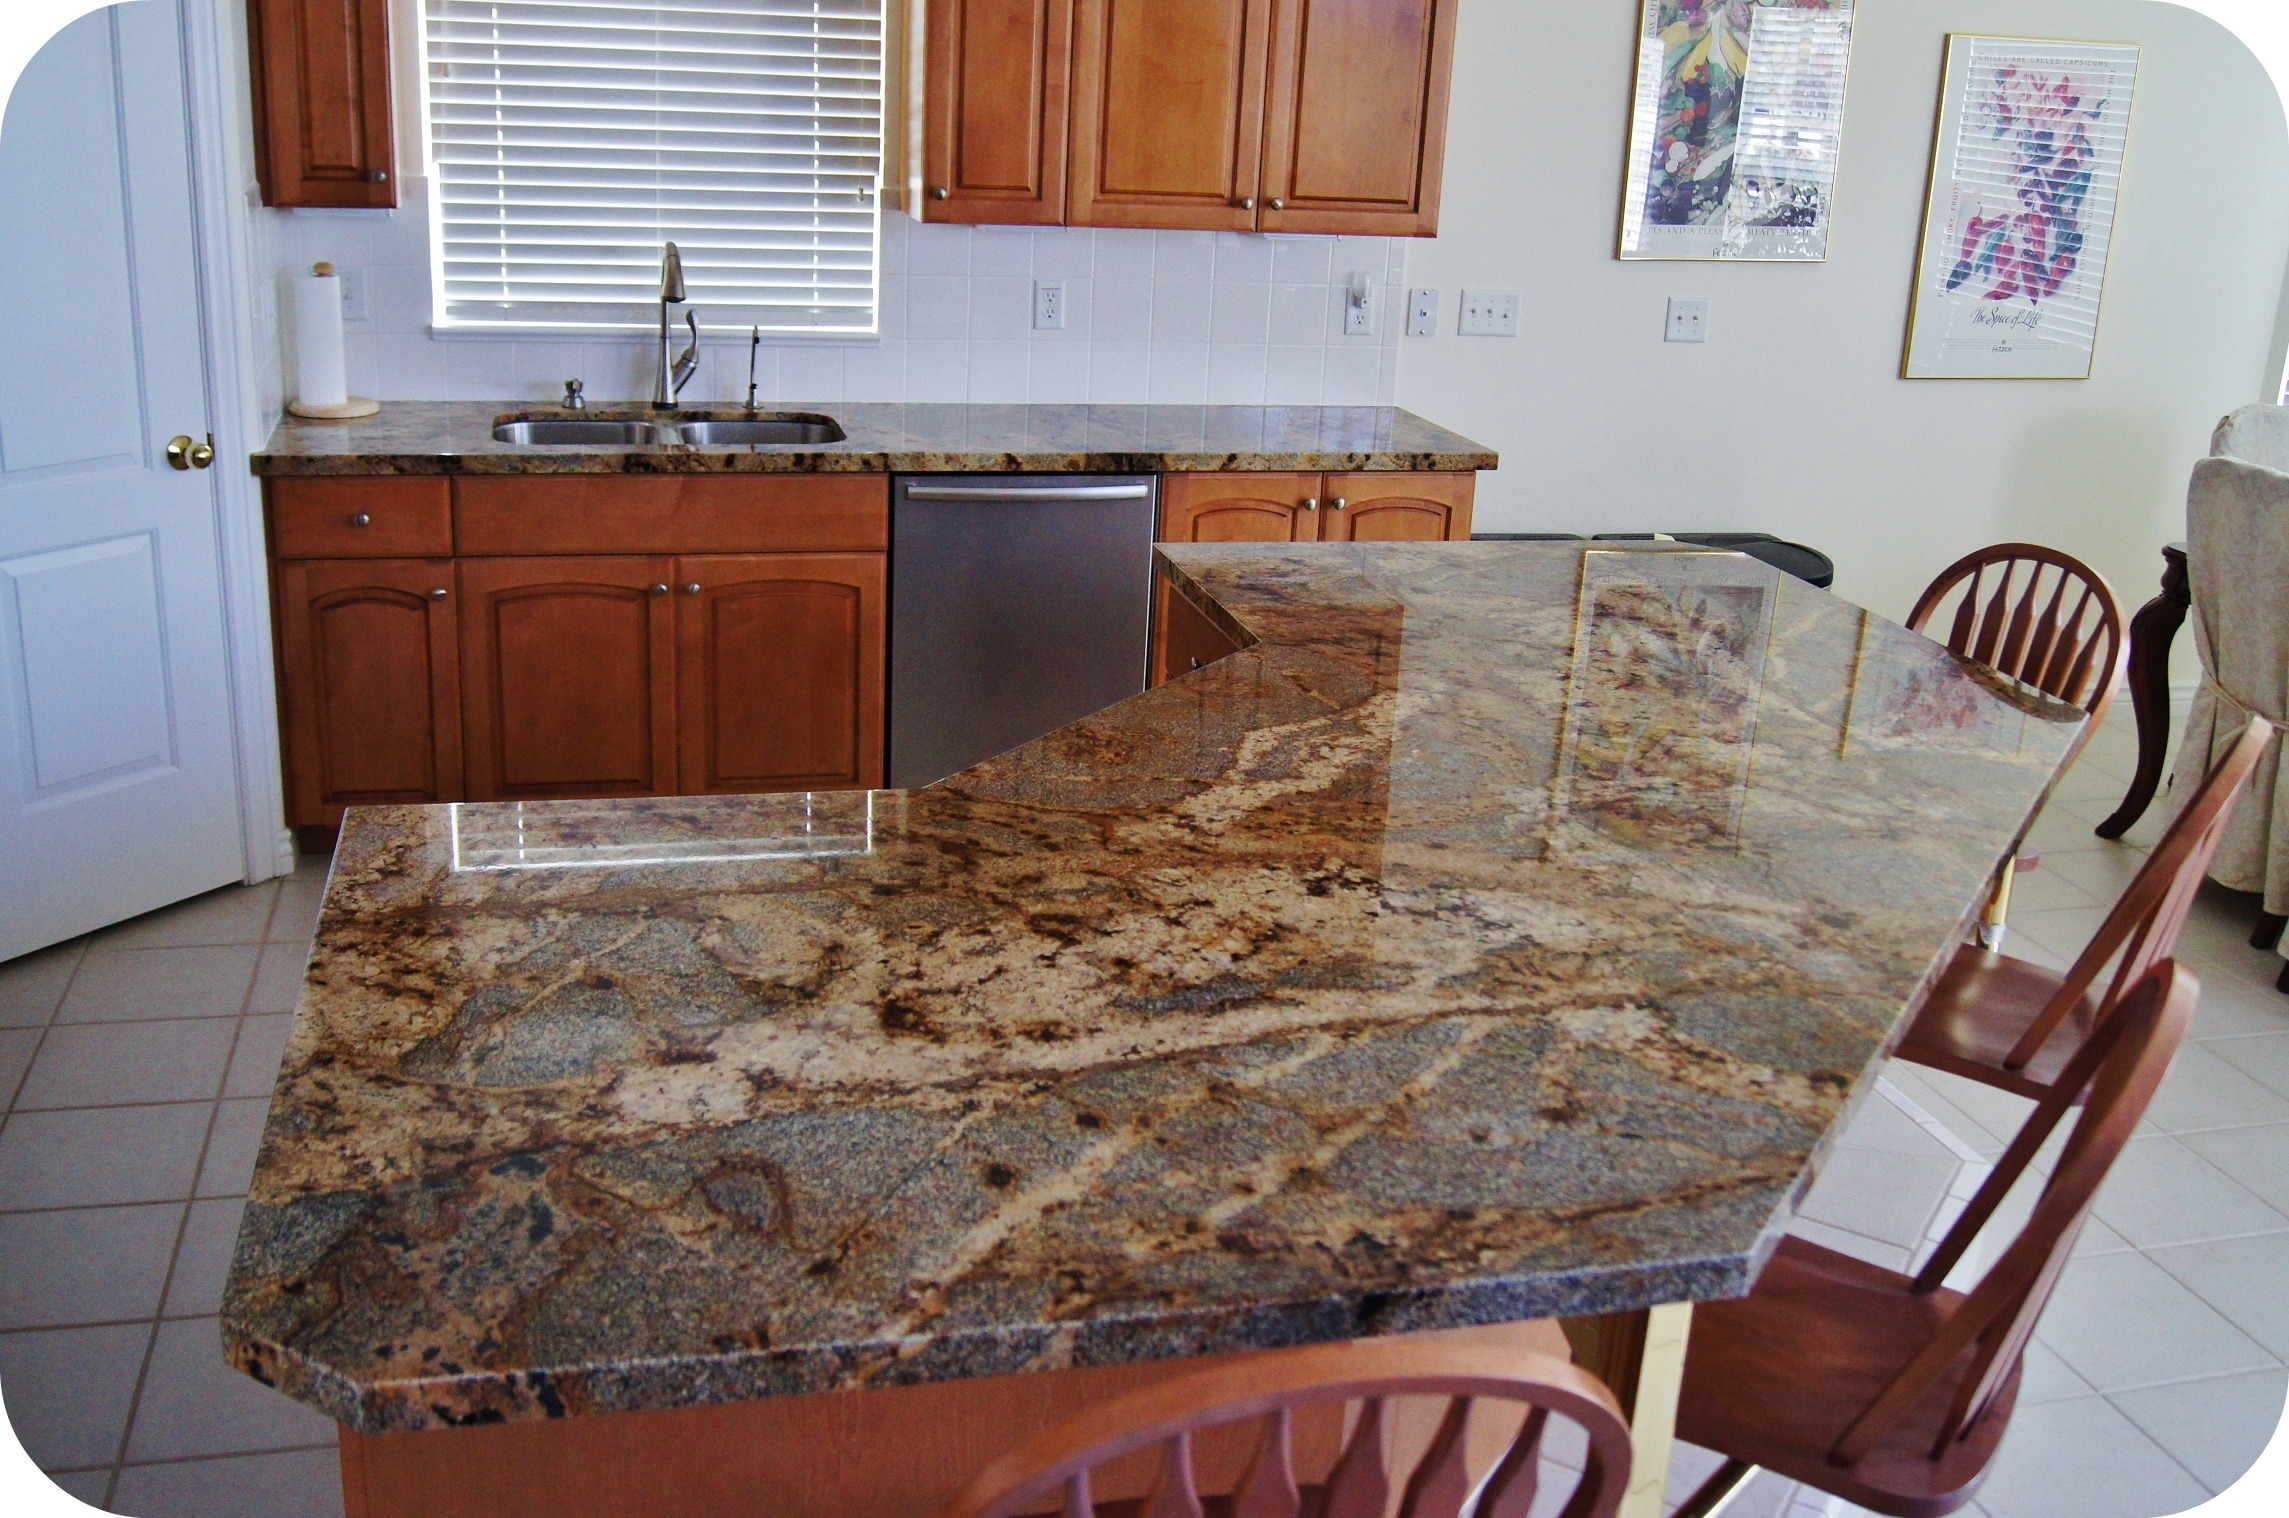 Different Countertop Surfaces Lapidus Granite Kitchen Mele Tile And Natural Stone